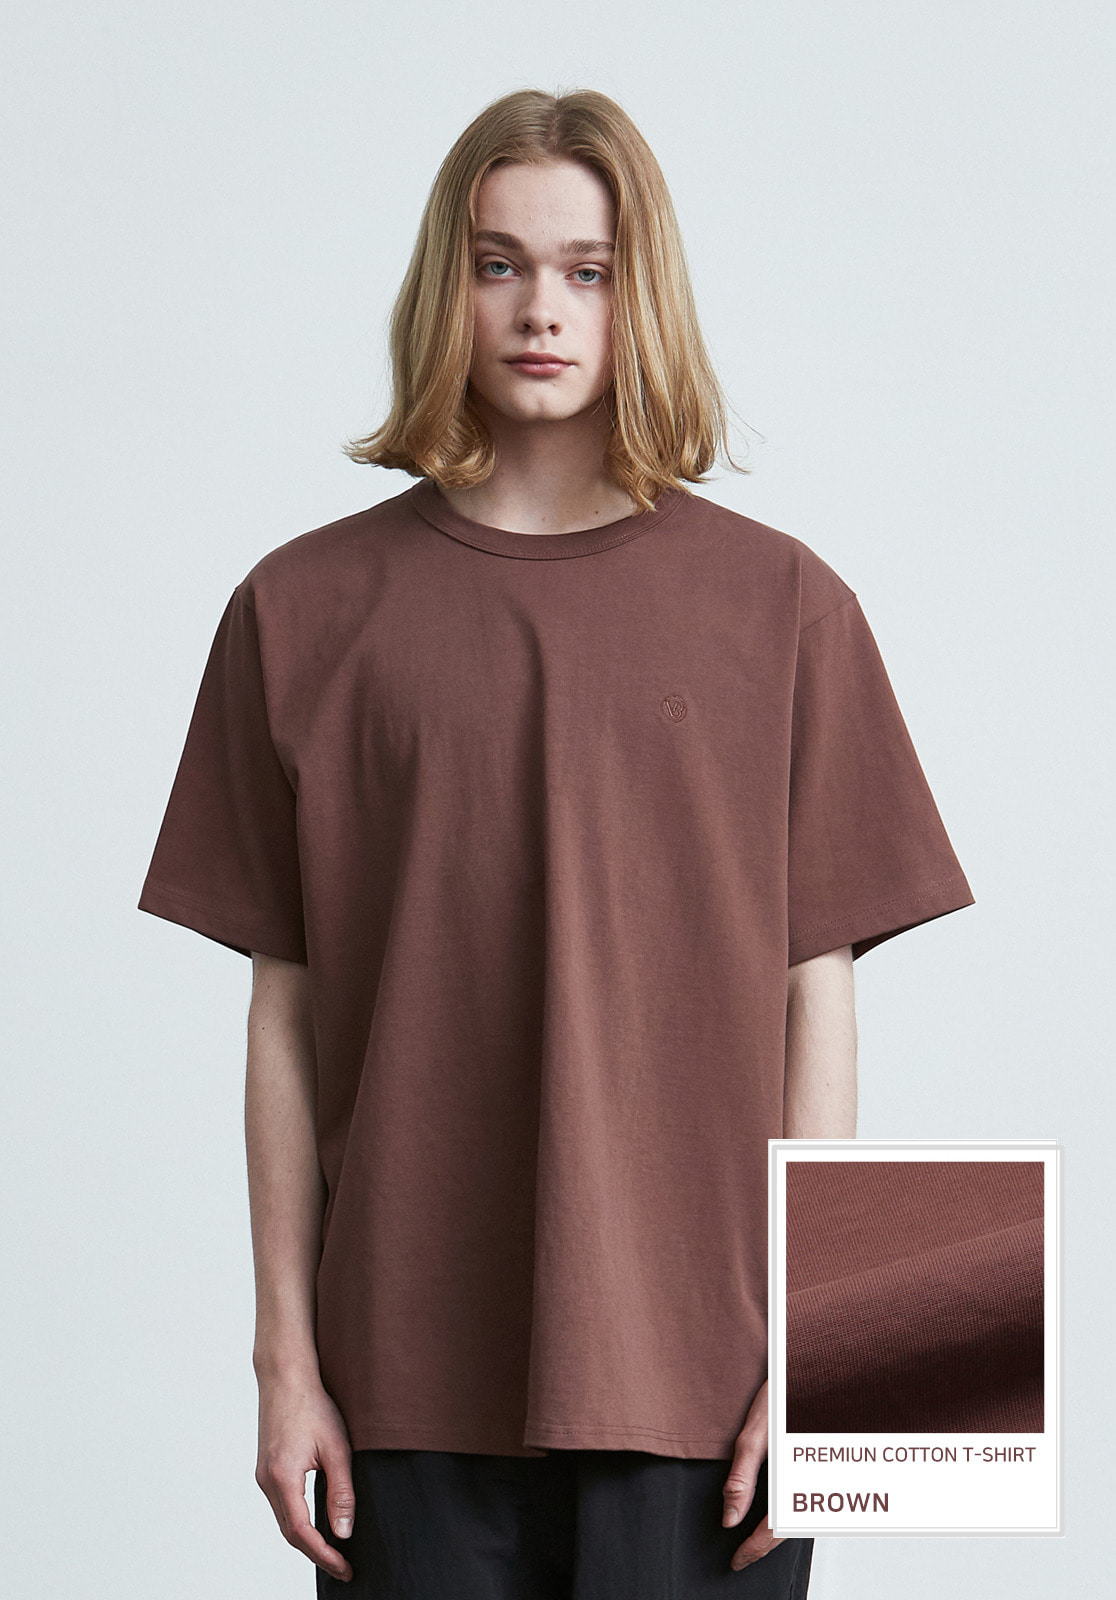 V017 PRIMIUM COTTON T-SHIRTS  BROWN